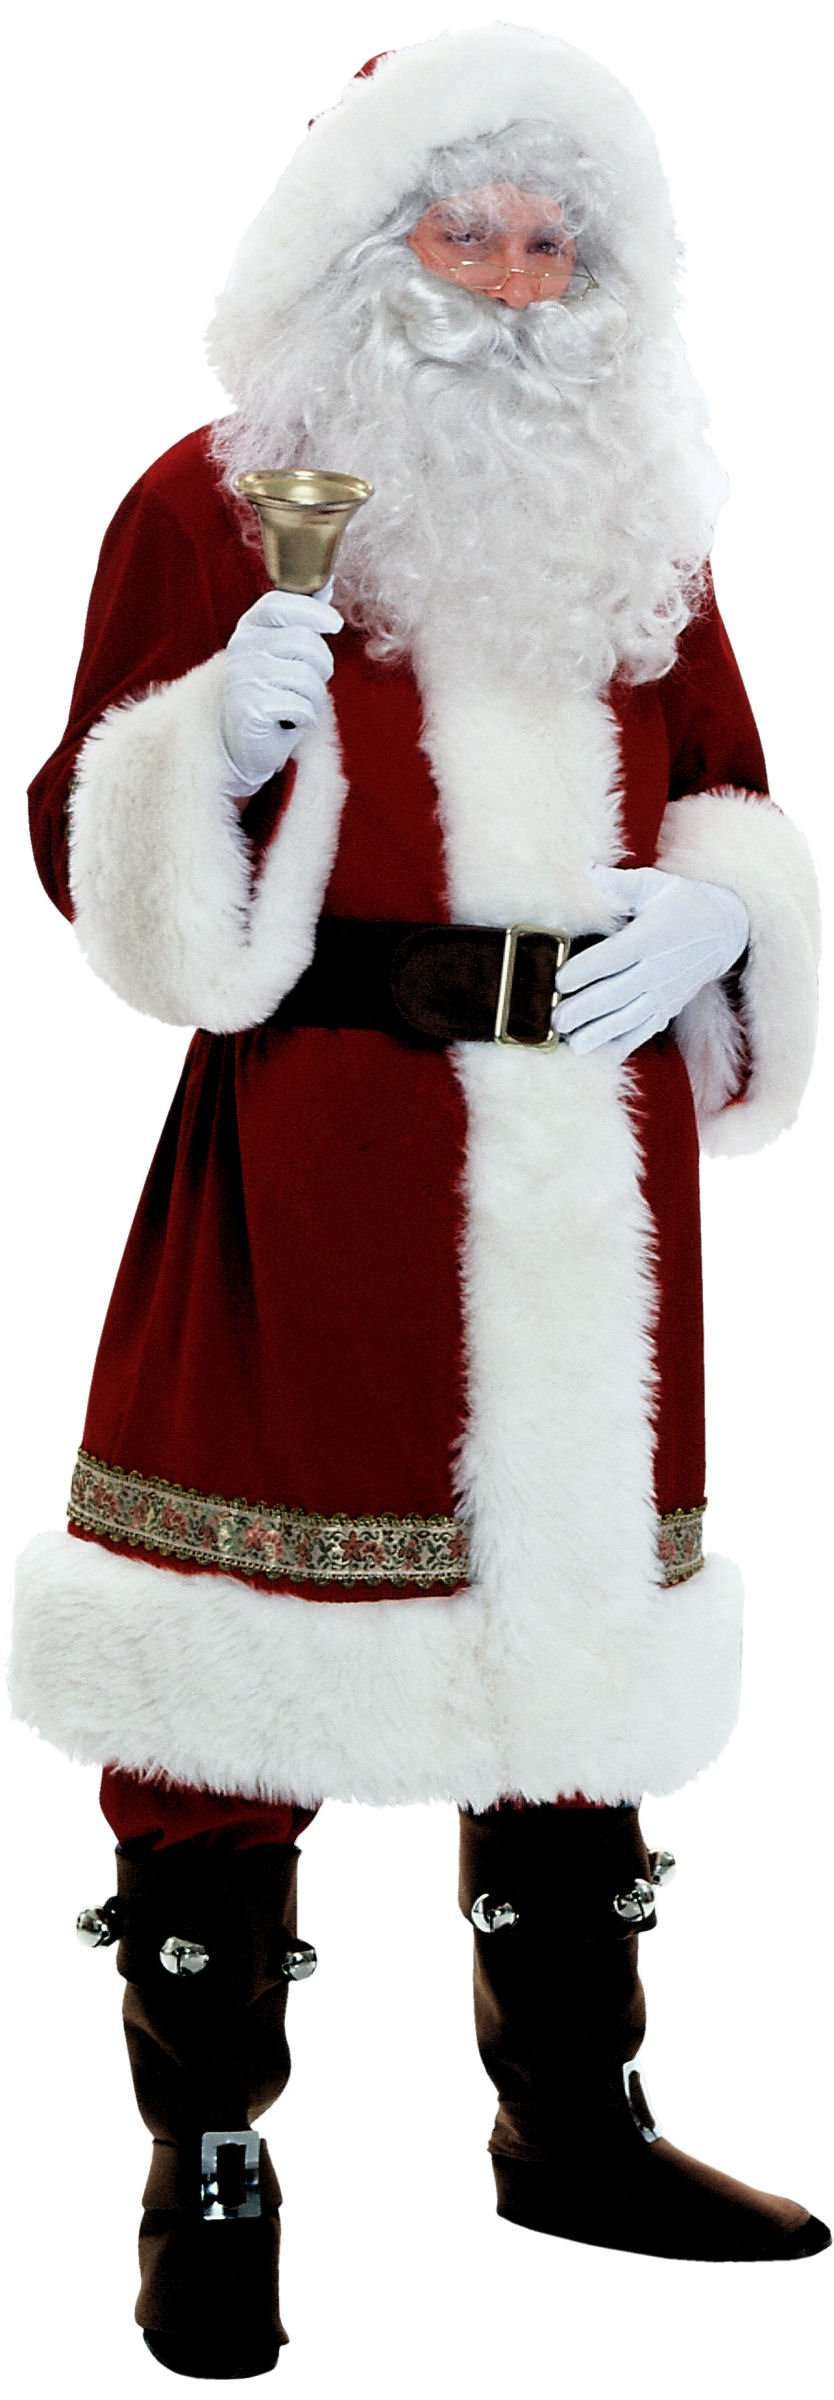 Super Deluxe Old Time Santa Suit Adult Costume - X-Large by Rubie's